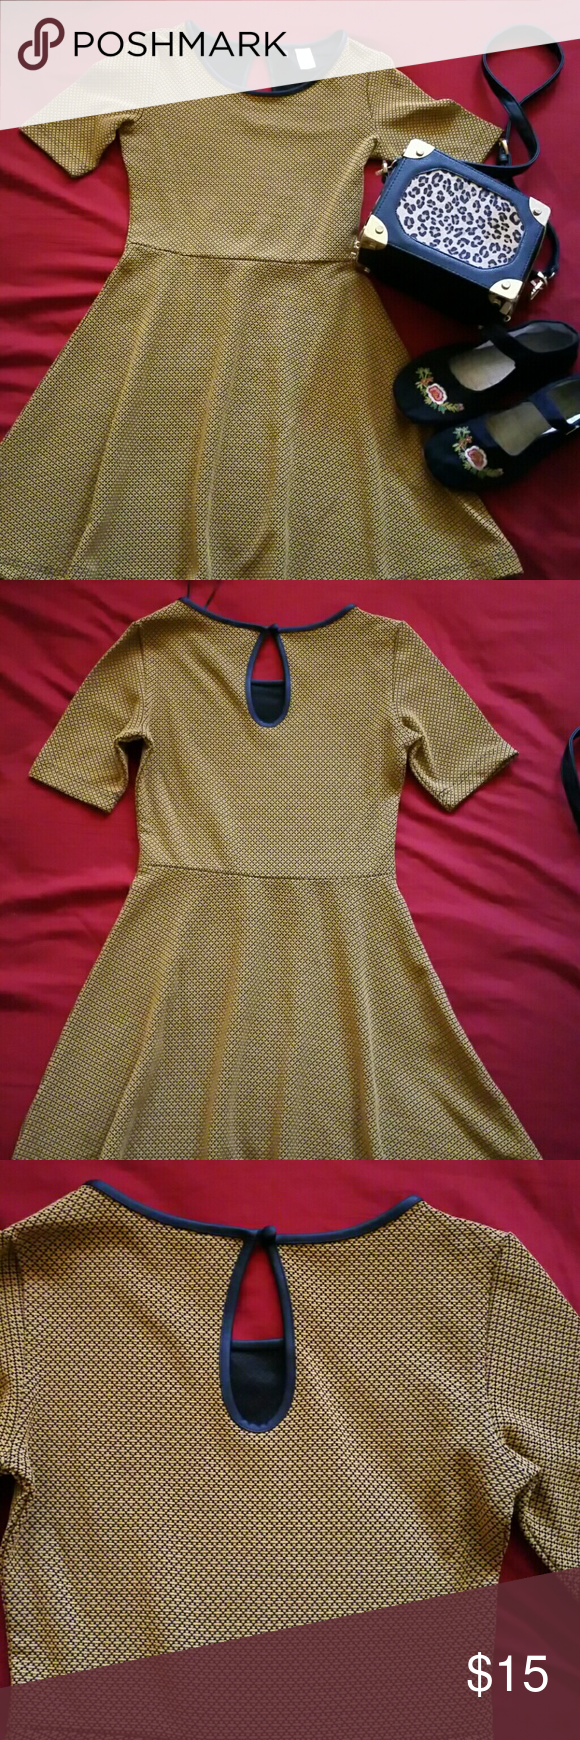 H&M Divided dress Selling a like new divided dress from H&M great condition love the pattern and lining is a leather like texture super fitted and true to size US 4 mustard yellow color with black. beautiful dress for any occasion or the summer goes well with flats and a cute purse (purse and flats not for sale not included ) H&M Dresses Midi